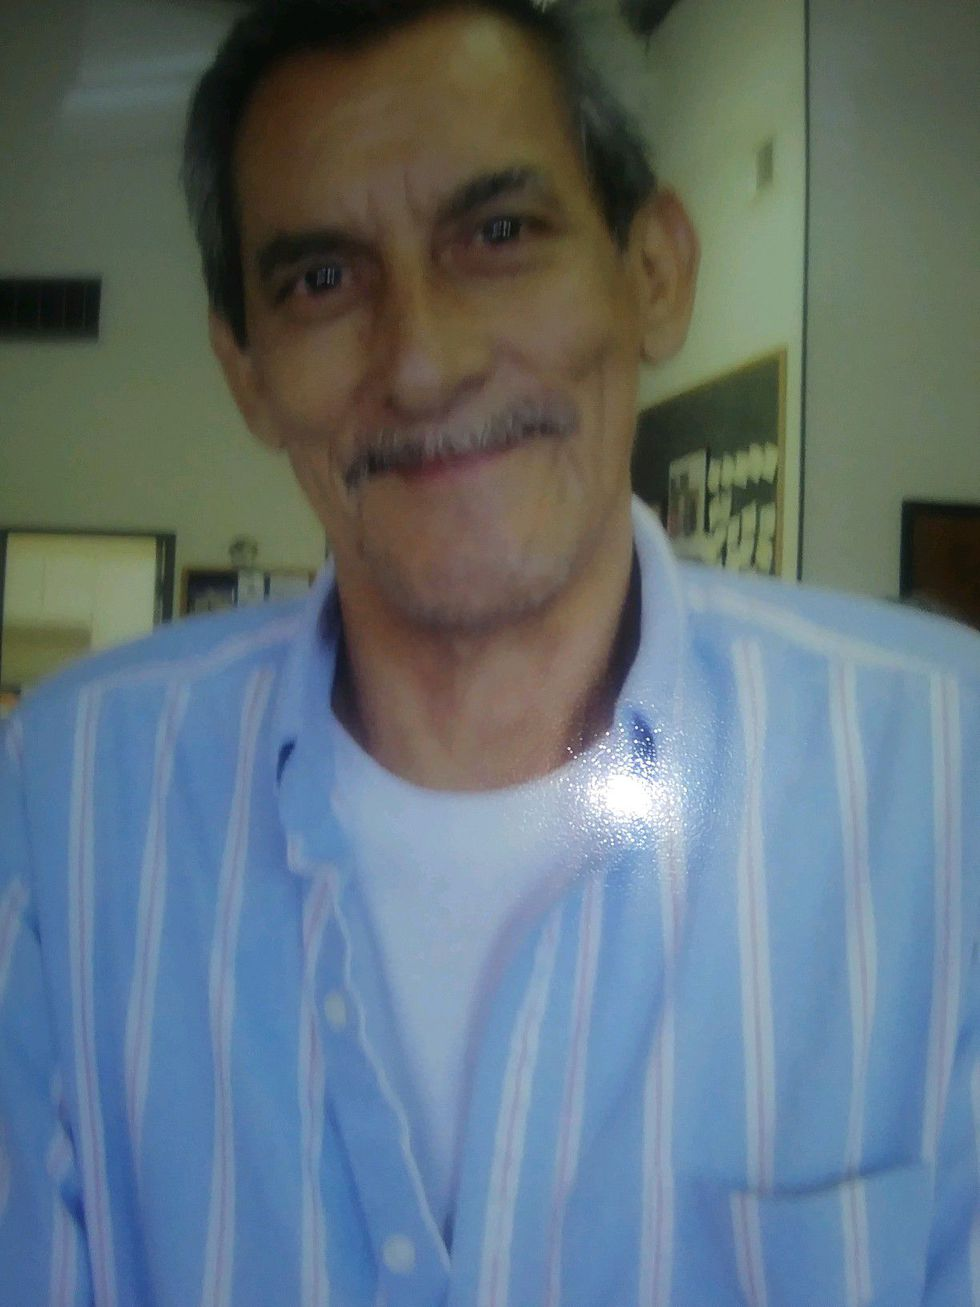 Stephan Morales was 71 when he died on April 16 after contracting COVID-19 while living in a nursing home. His sister Delia Satterwhite suspects that his passing isn't included in the official death toll in nursing homes because of government guidelines that allow nursing homes to only tally cases that happen after May 7.